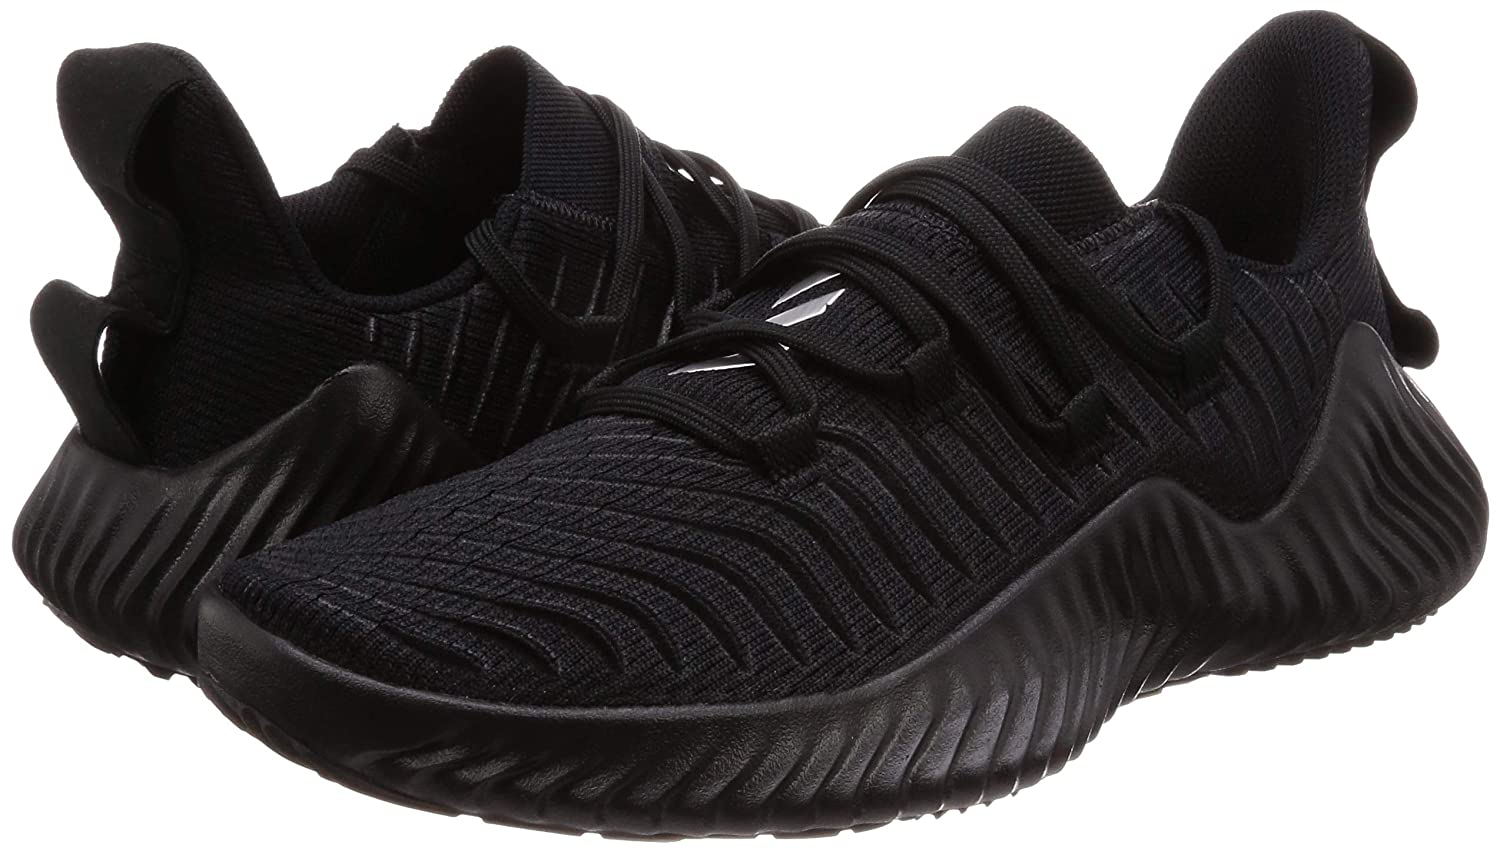 8e2dcc2d95e5d Adidas Men s Alphabounce Trainer Cblack Running Shoes-8 UK India (42 1 9  EU) (AQ0609)  Buy Online at Low Prices in India - Amazon.in